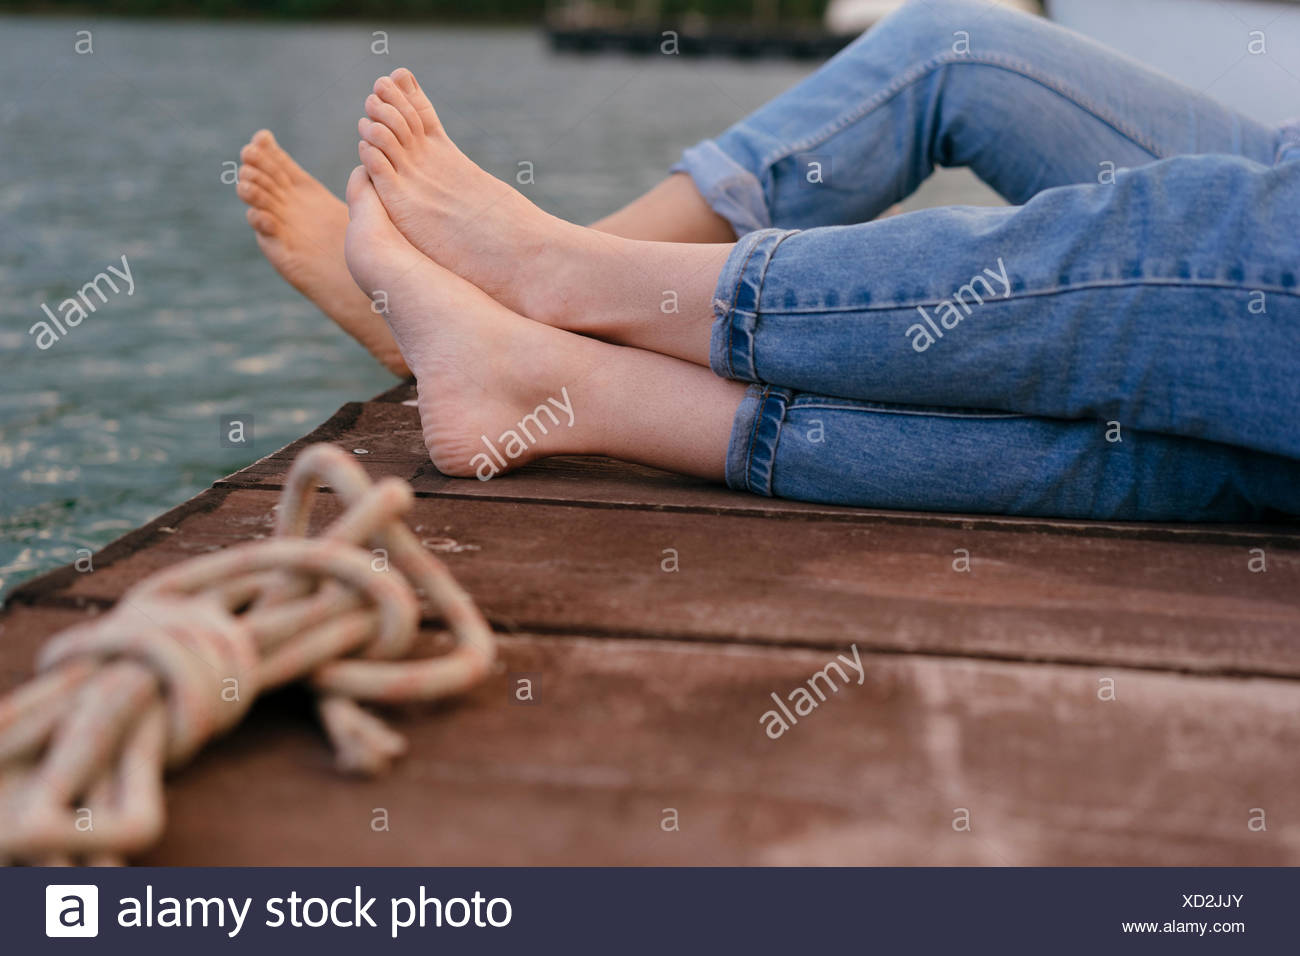 Two women relaxing on pier, focus on barefeet - Stock Image